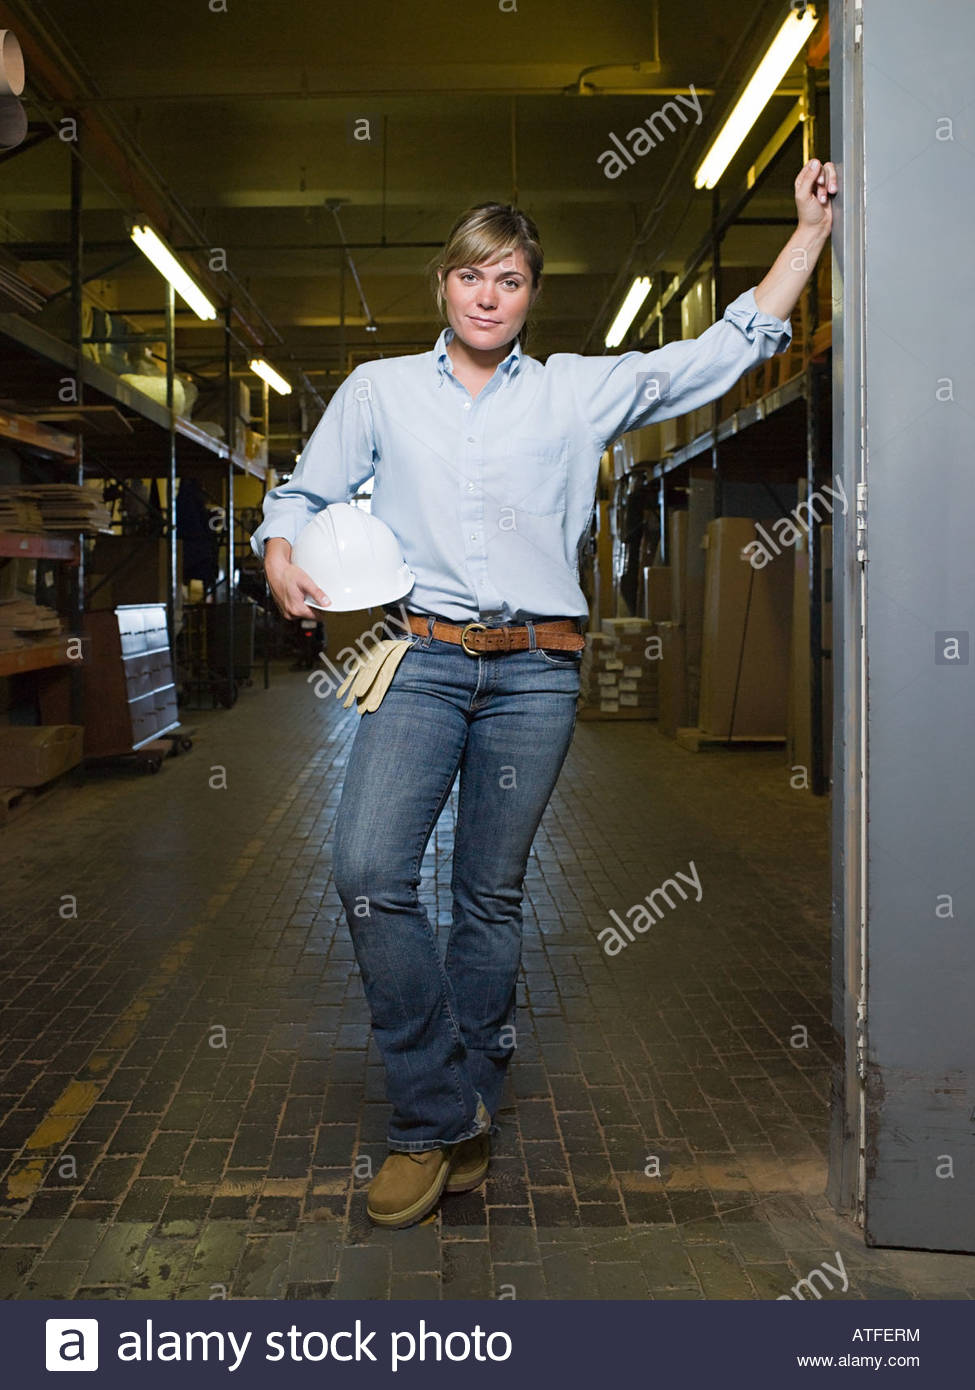 Female manual worker - Stock Image